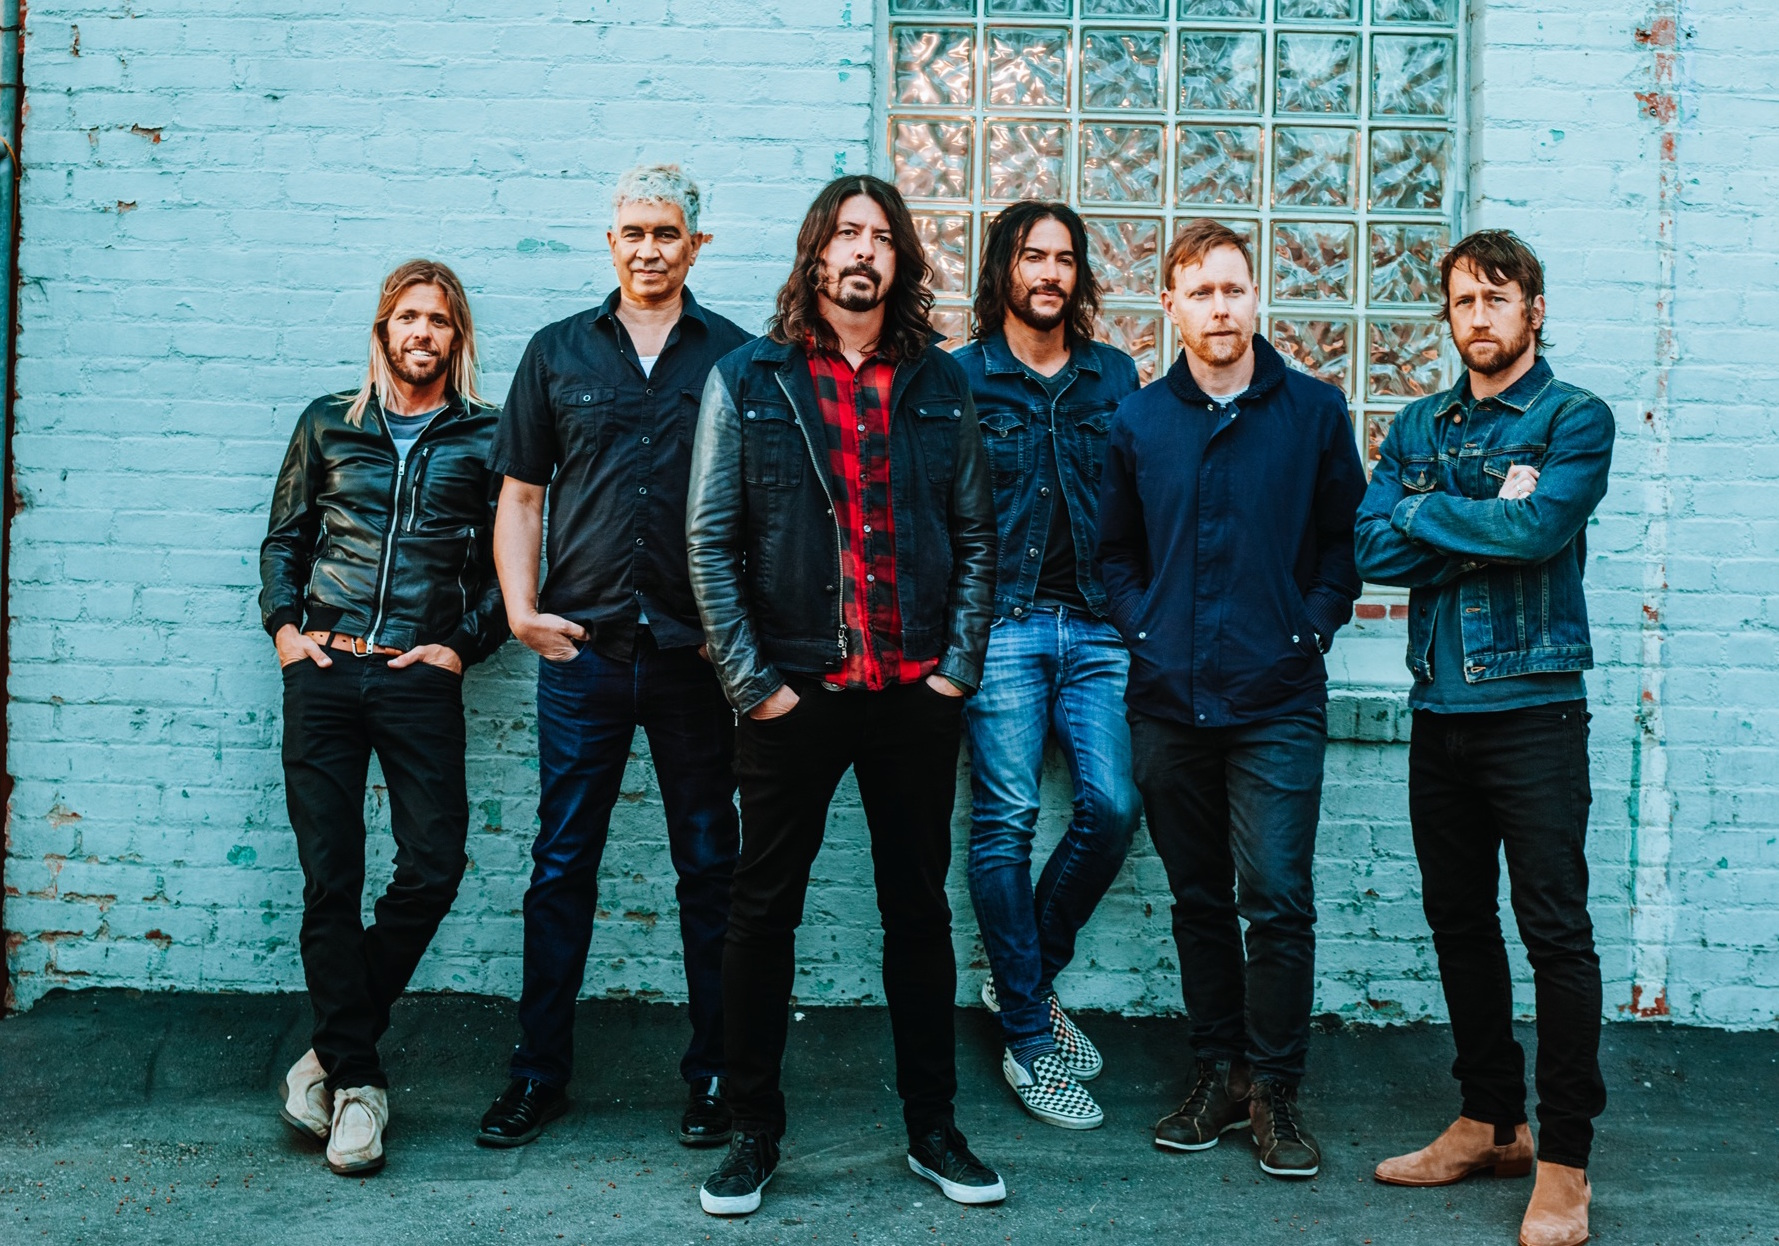 Foo Fighters have teamed up with Justin Timberlake on 'Concrete and Gold'